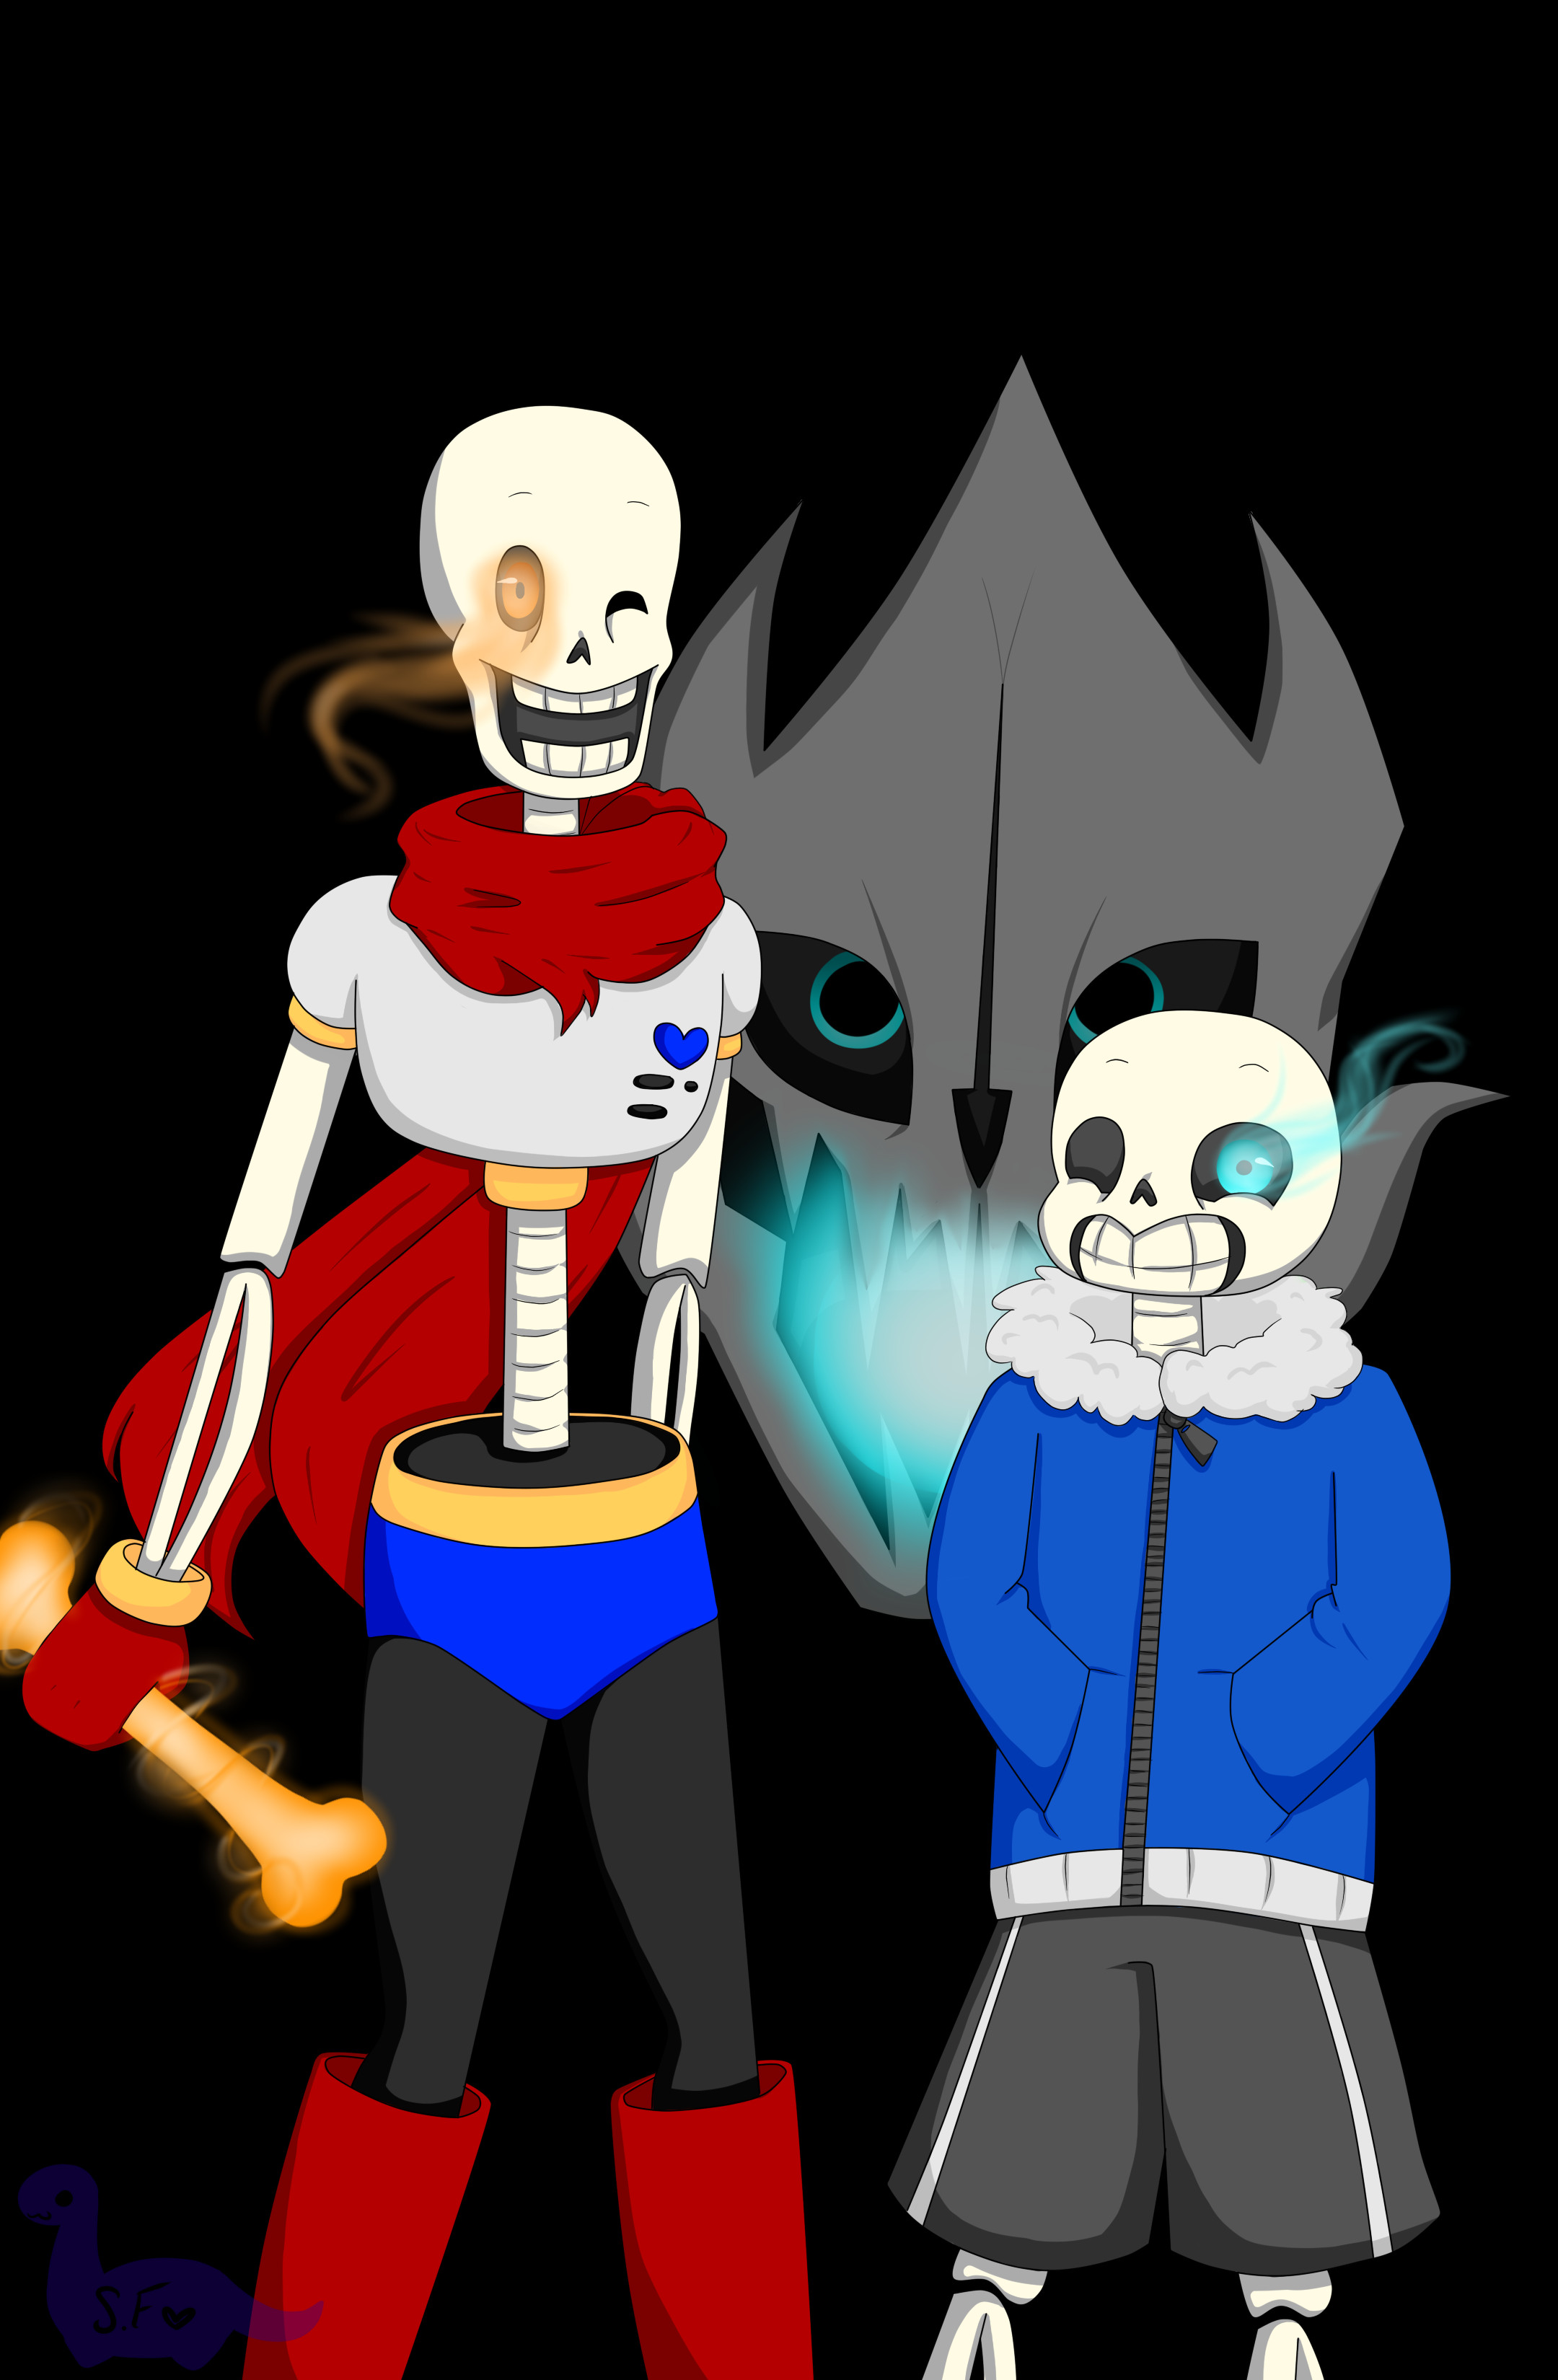 2160x3300 ...  Sans And Papyrus Wallpaper by Sarah forstie on DeviantA